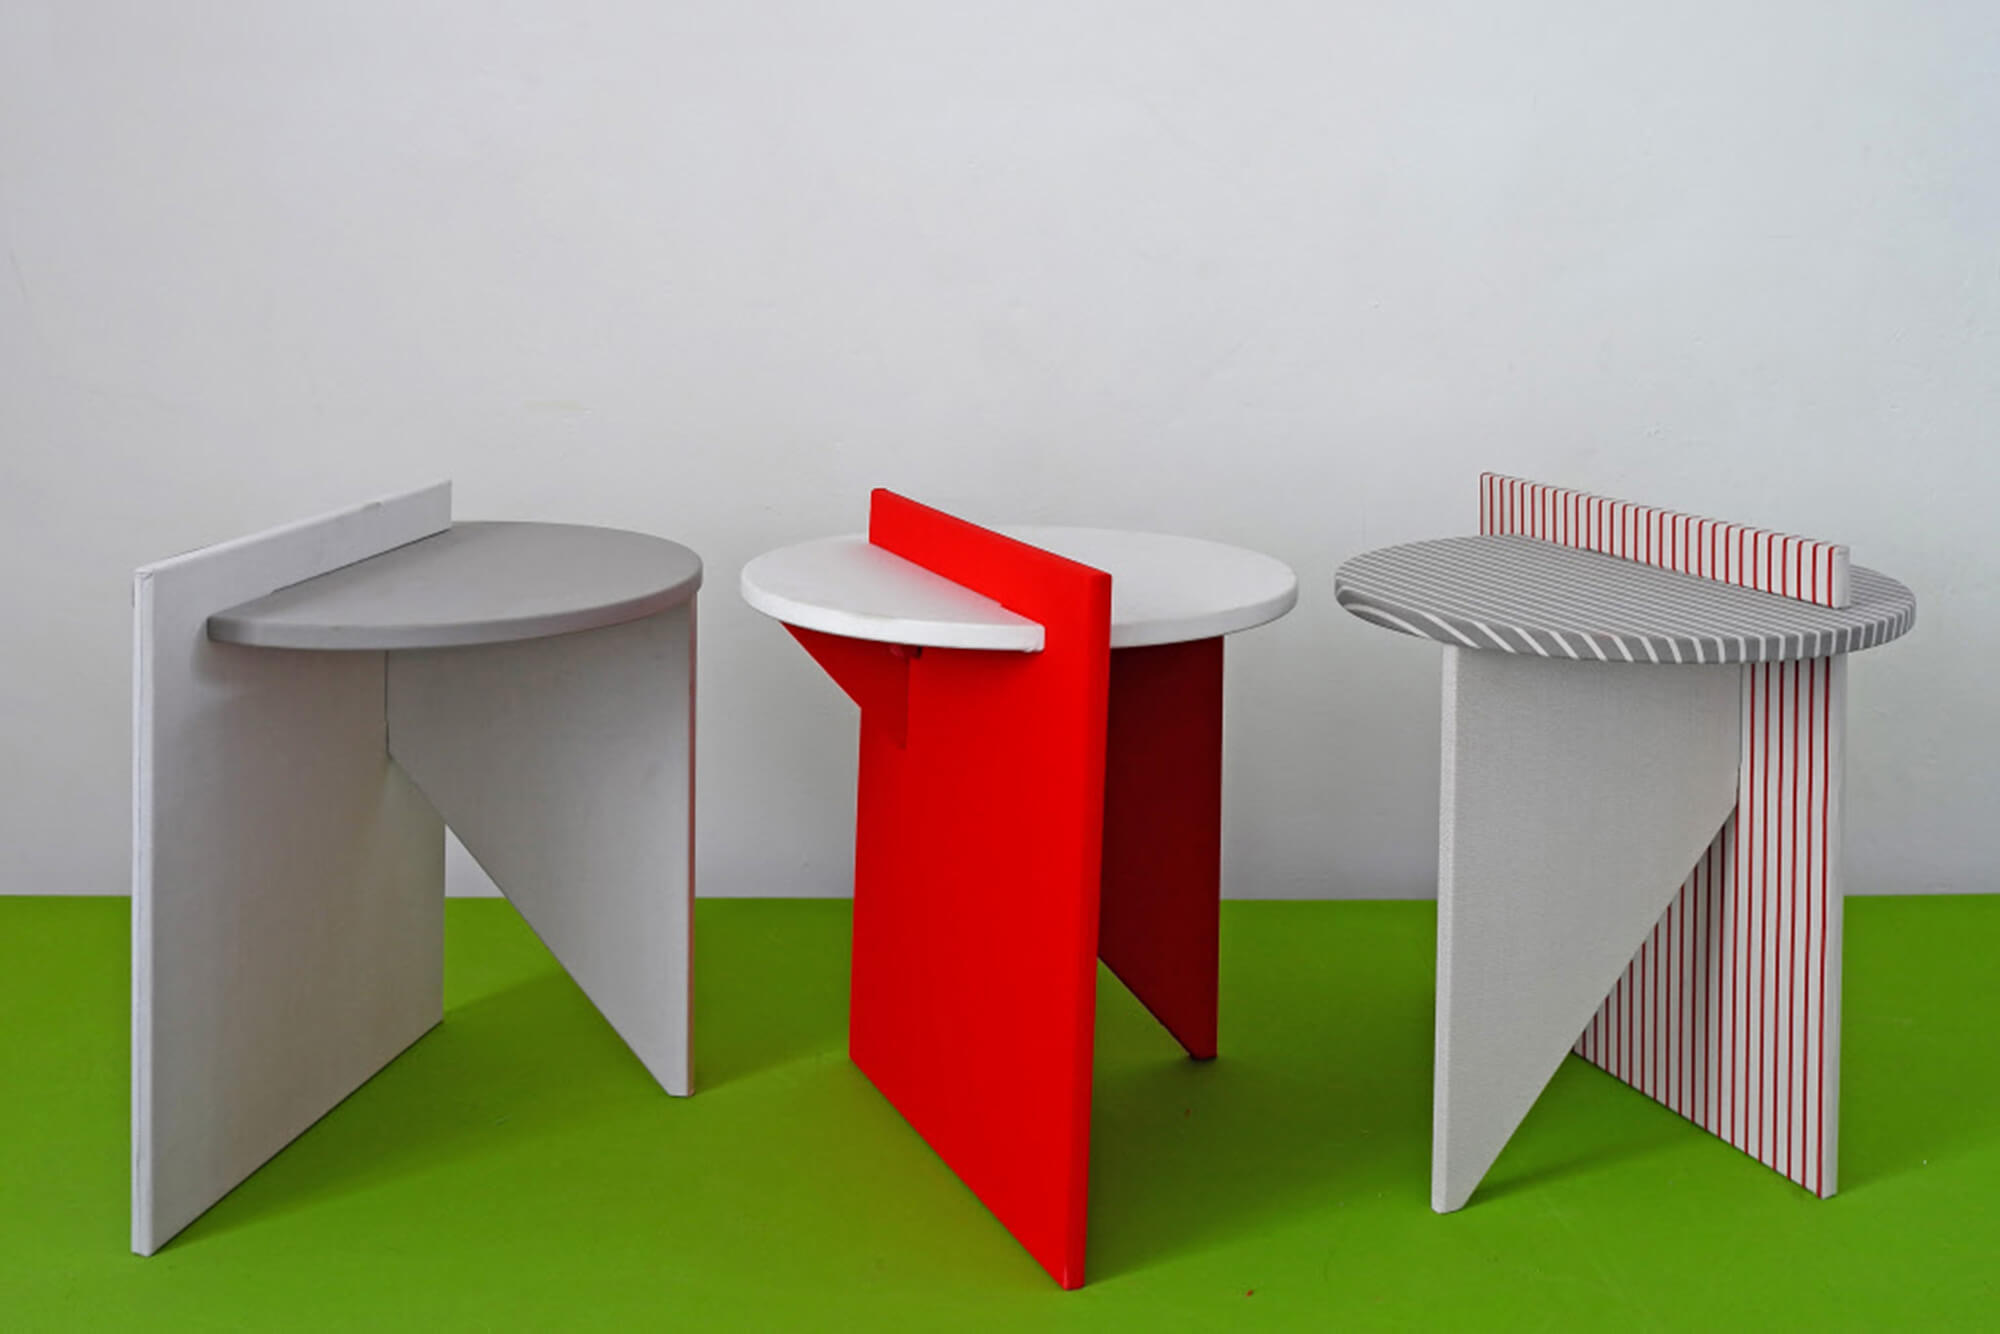 Side tables by Atelier Lavit in red and white colors